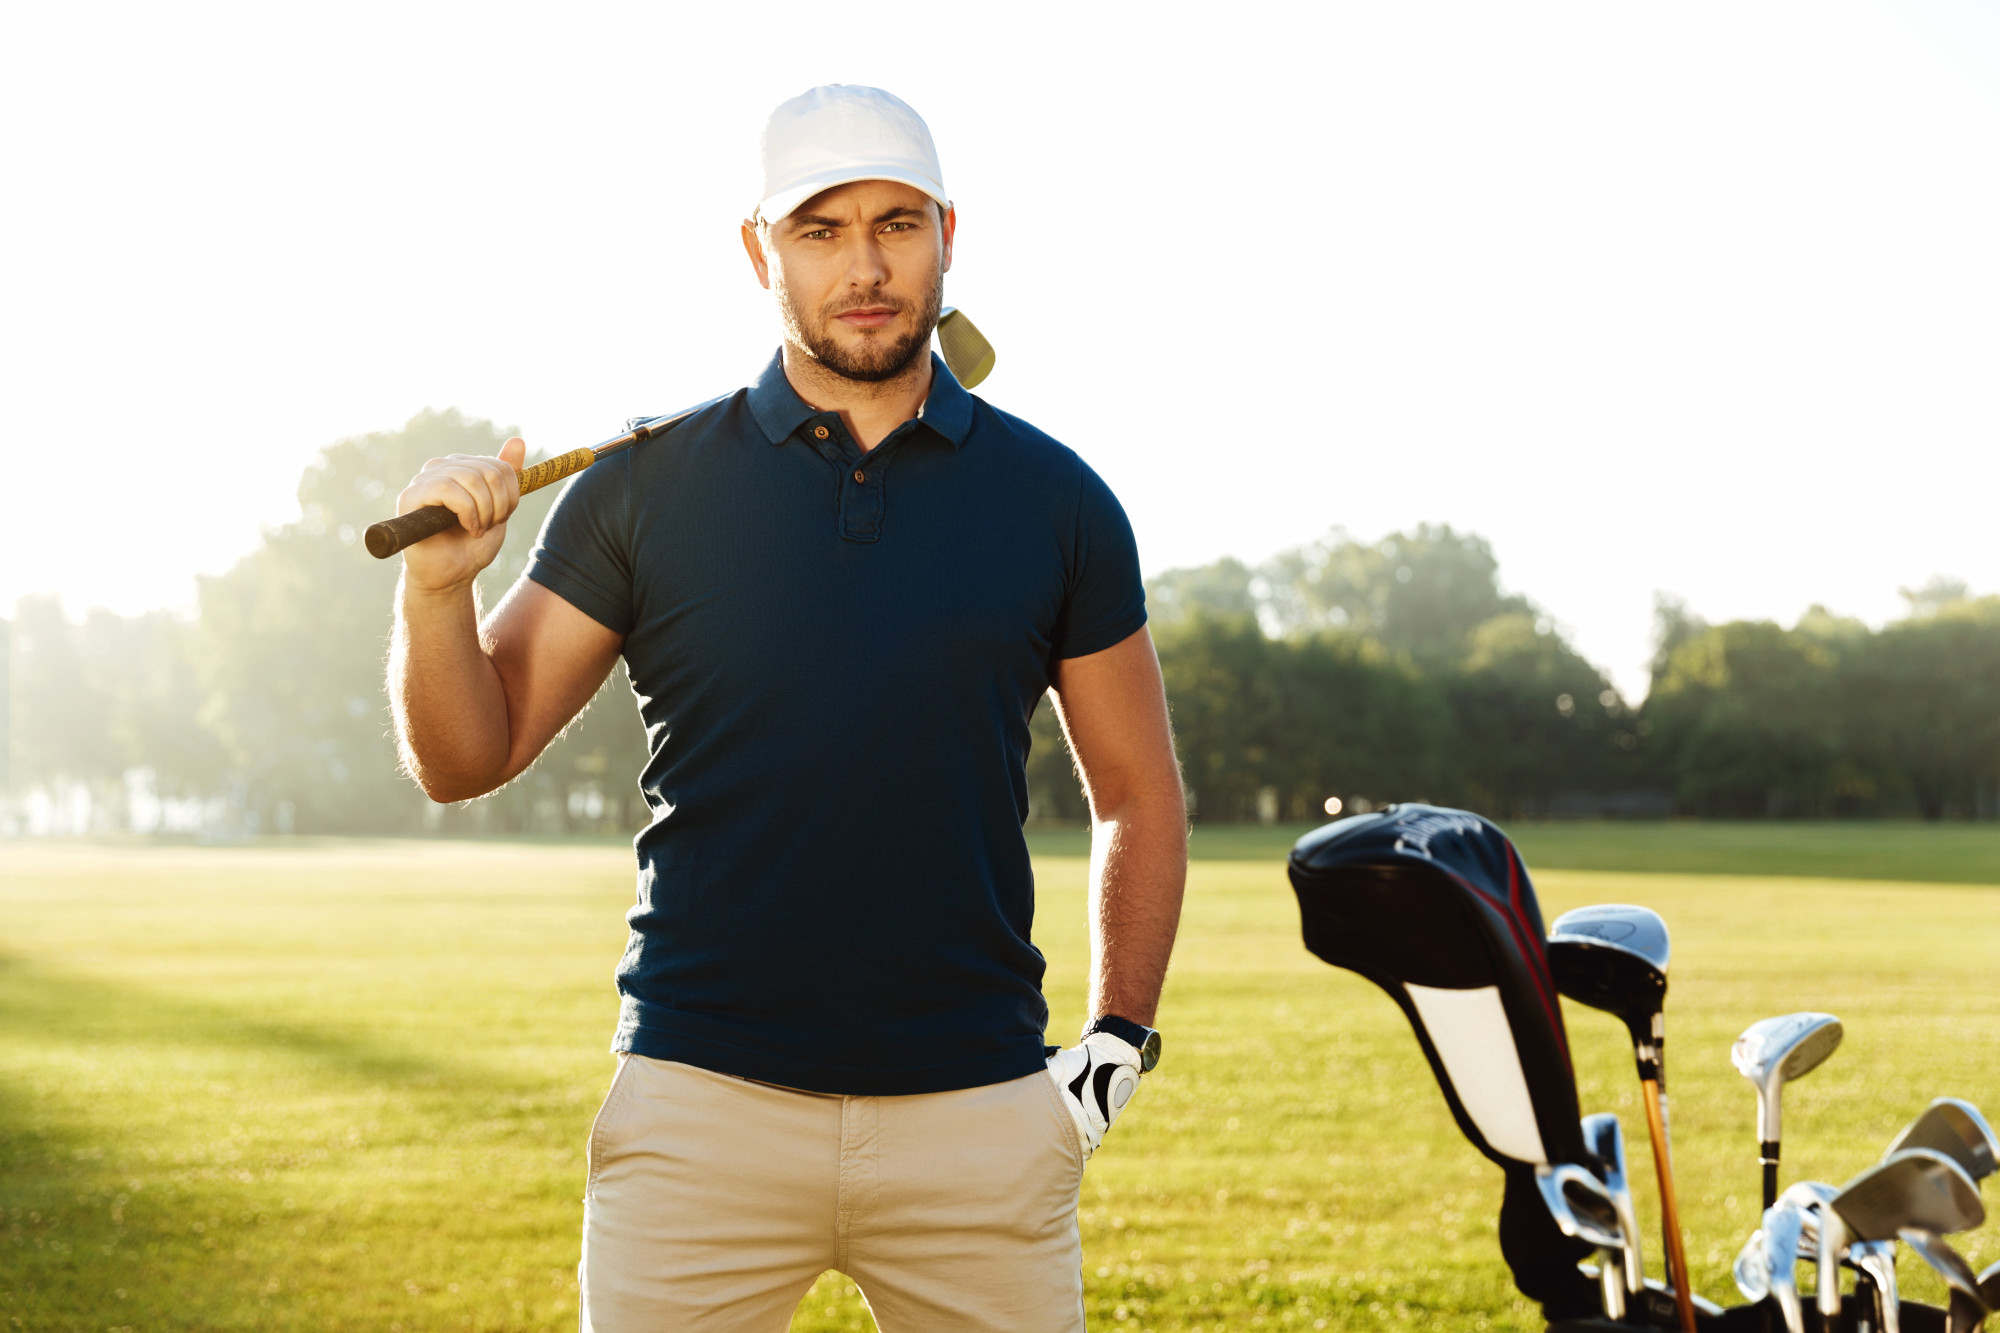 Is Your Style On Par?: A Complete Guide to Men's Golf Attire